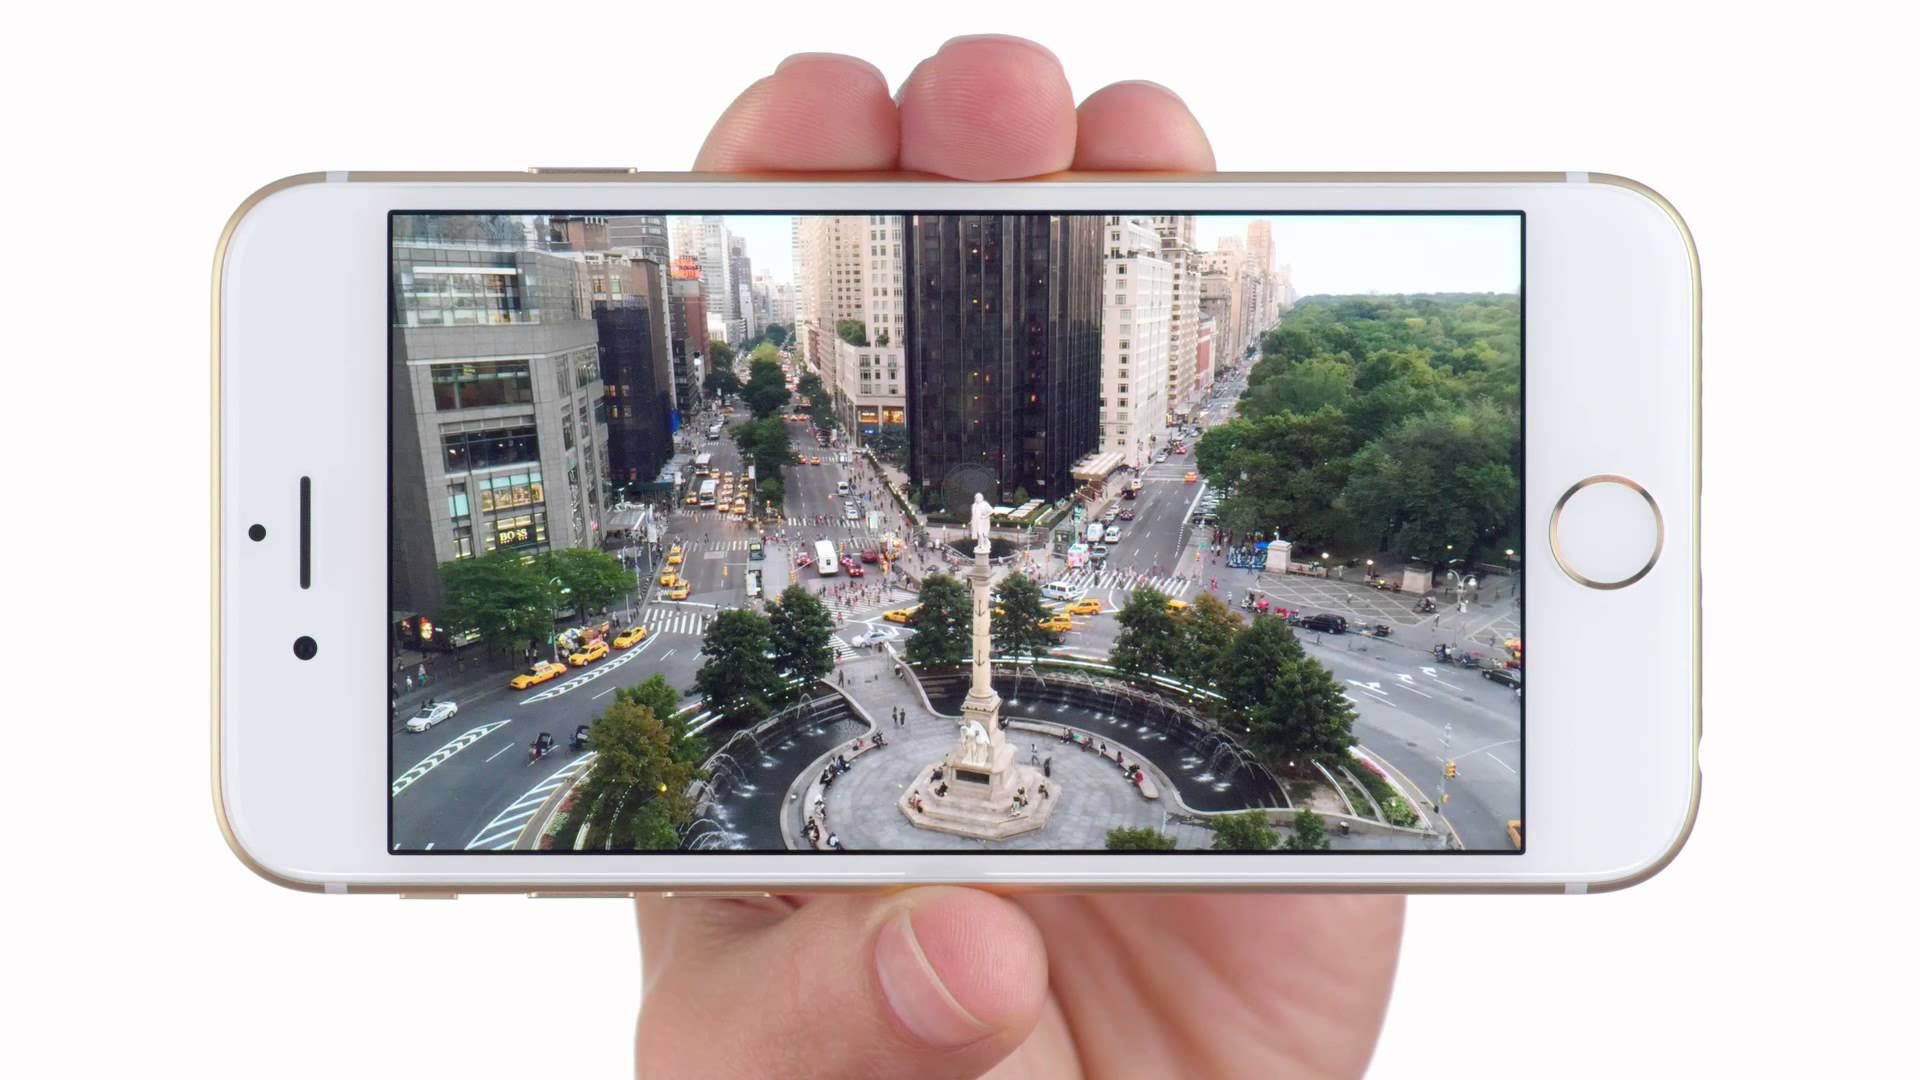 Gigantomanisch: iPhone 6 und iPhone 6 Plus Video! 1